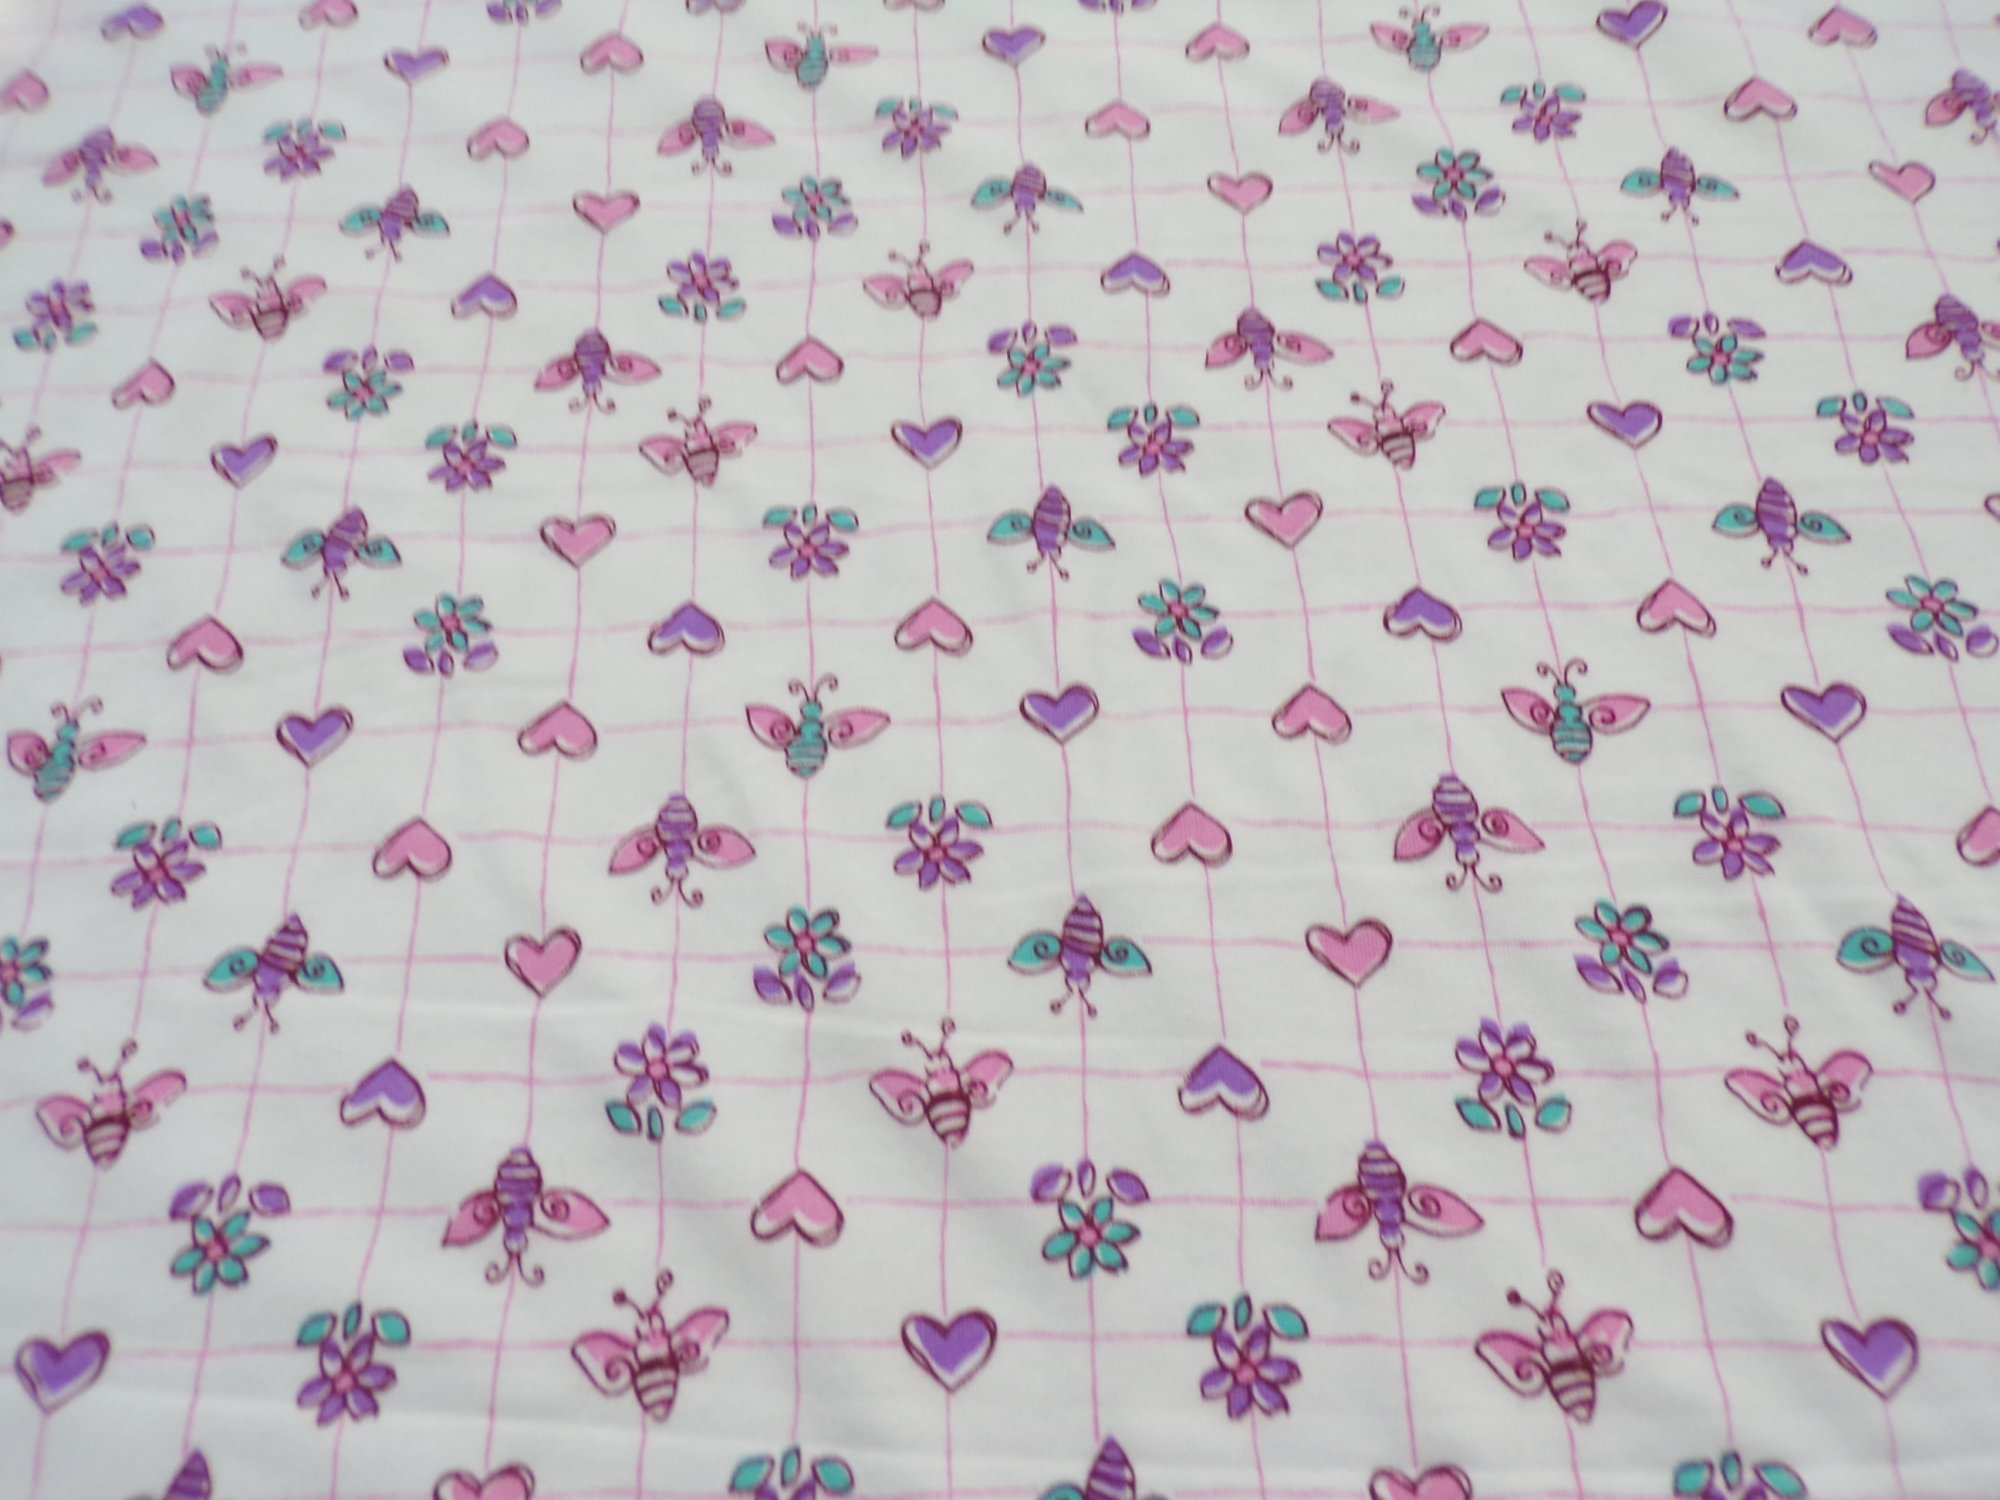 Cotton Lycra Jersey - Hearts Bees and Flowers